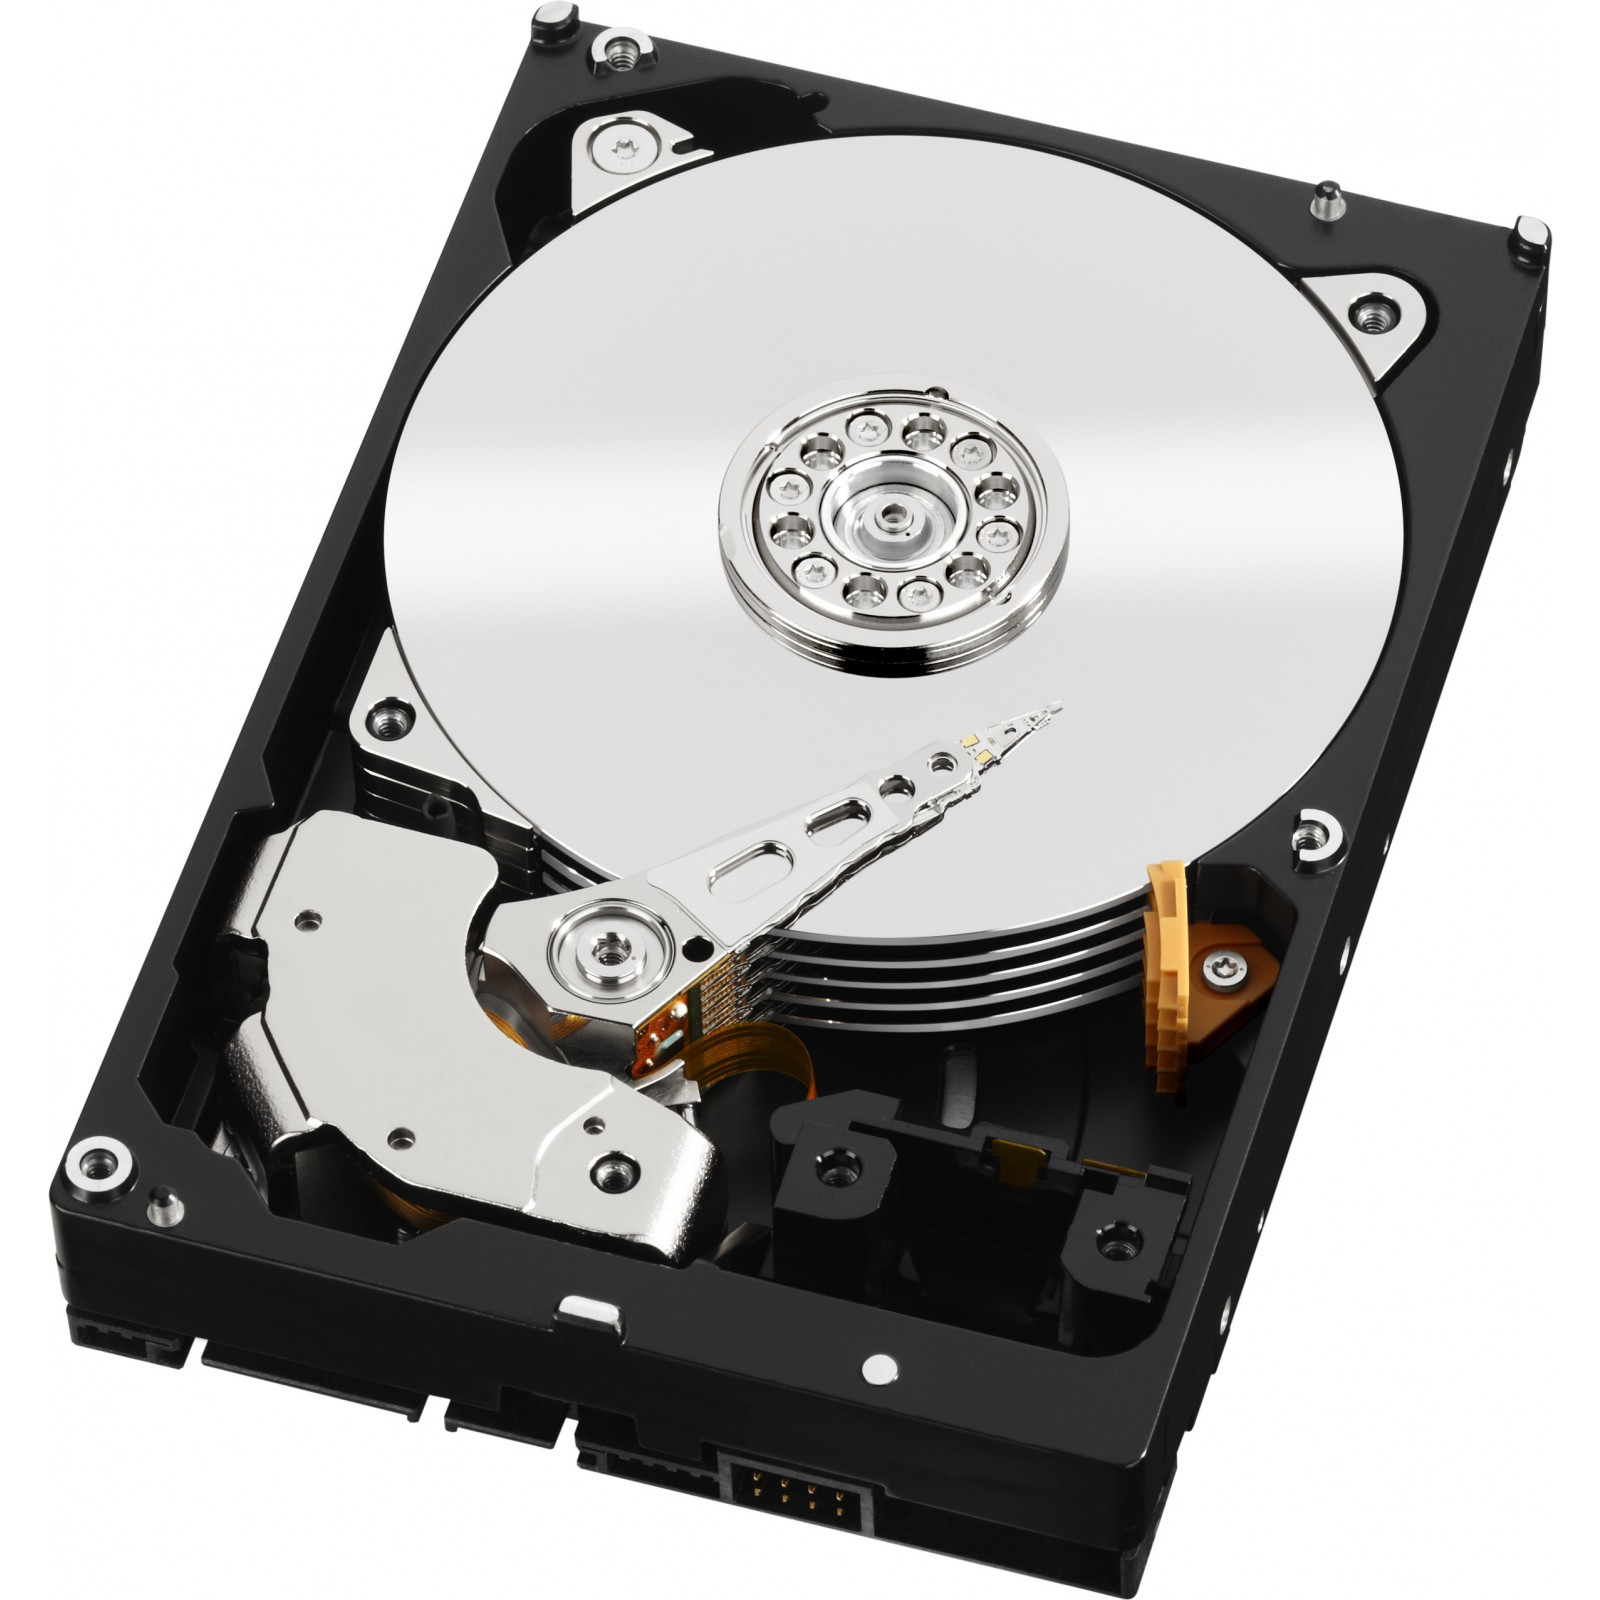 WESTERN DIGITAL RED 2TB 2000GB SERIAL ATA III INTERNAL HARD DRIVE REFURBISHED